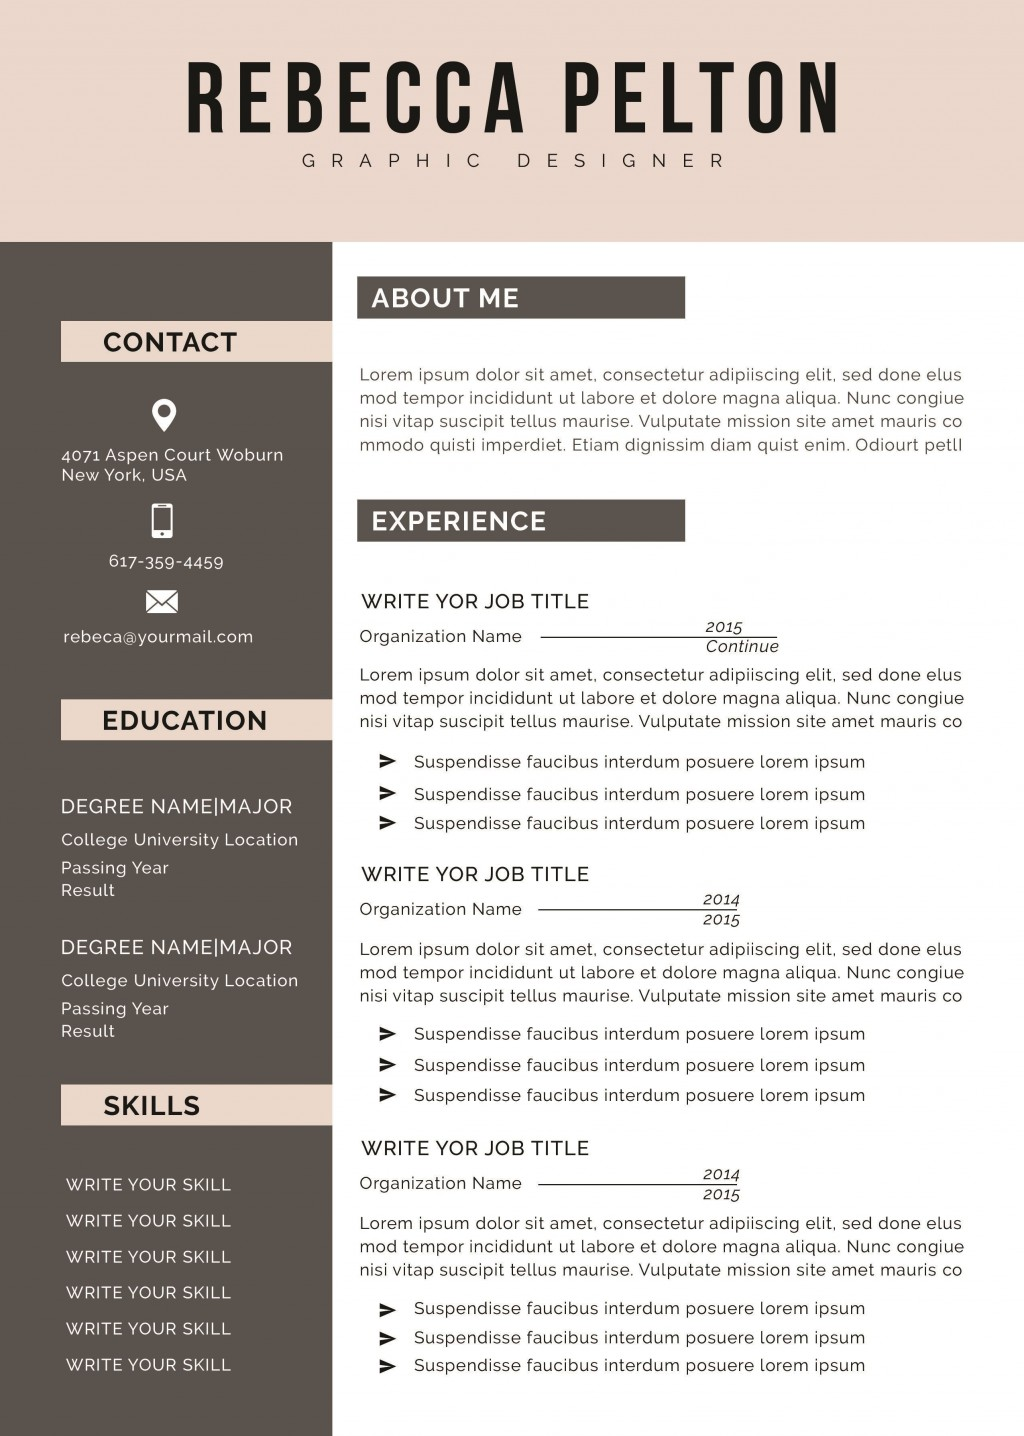 000 Awesome Professional Cv Template Free 2019 Inspiration  Resume DownloadLarge